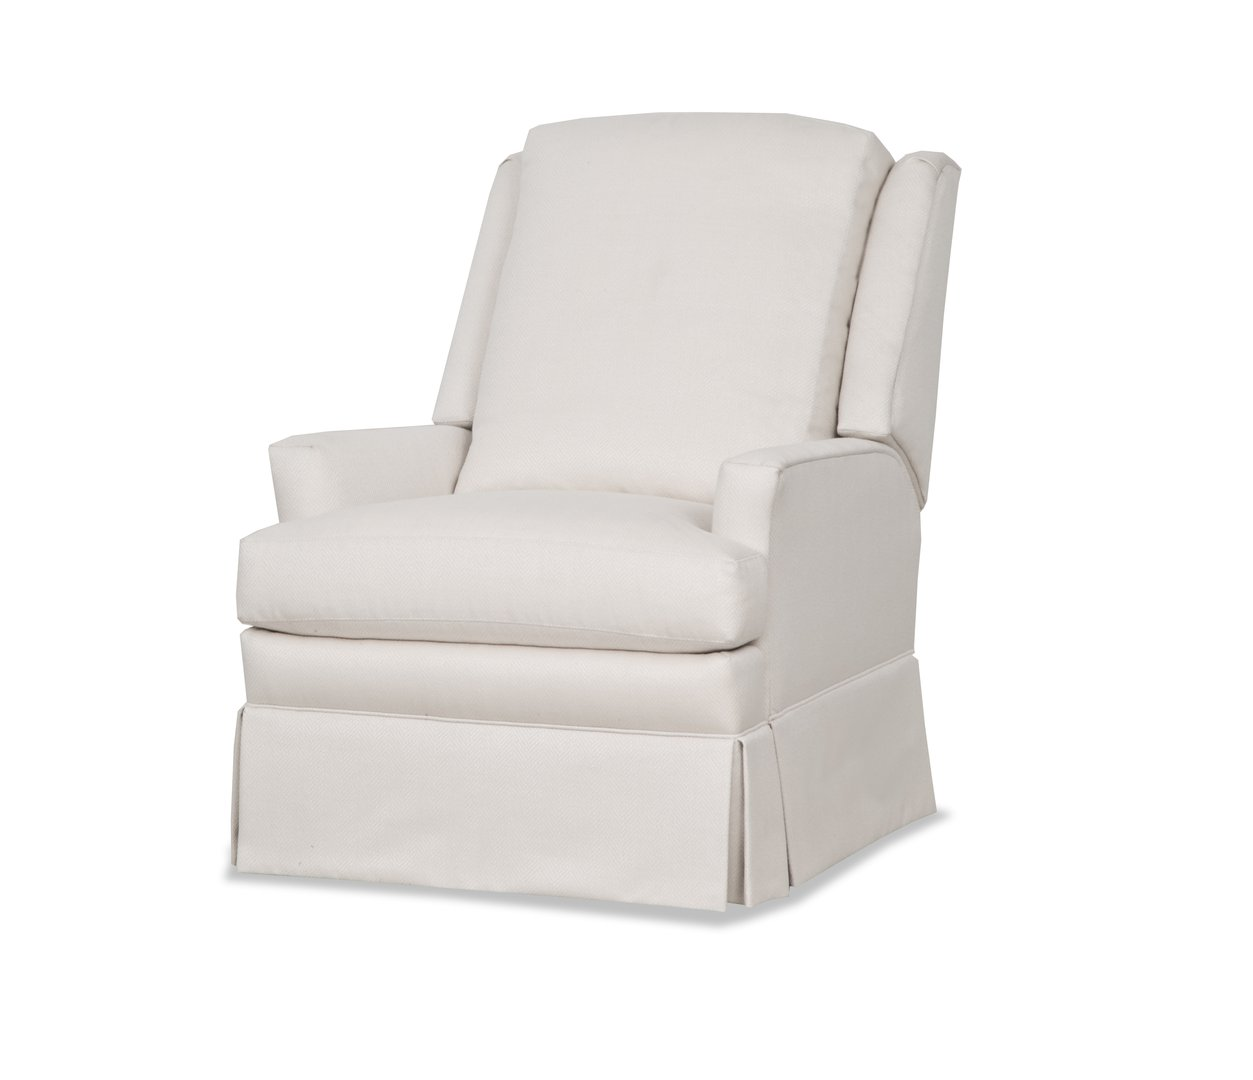 Grace Motorized Reclining Chair Image